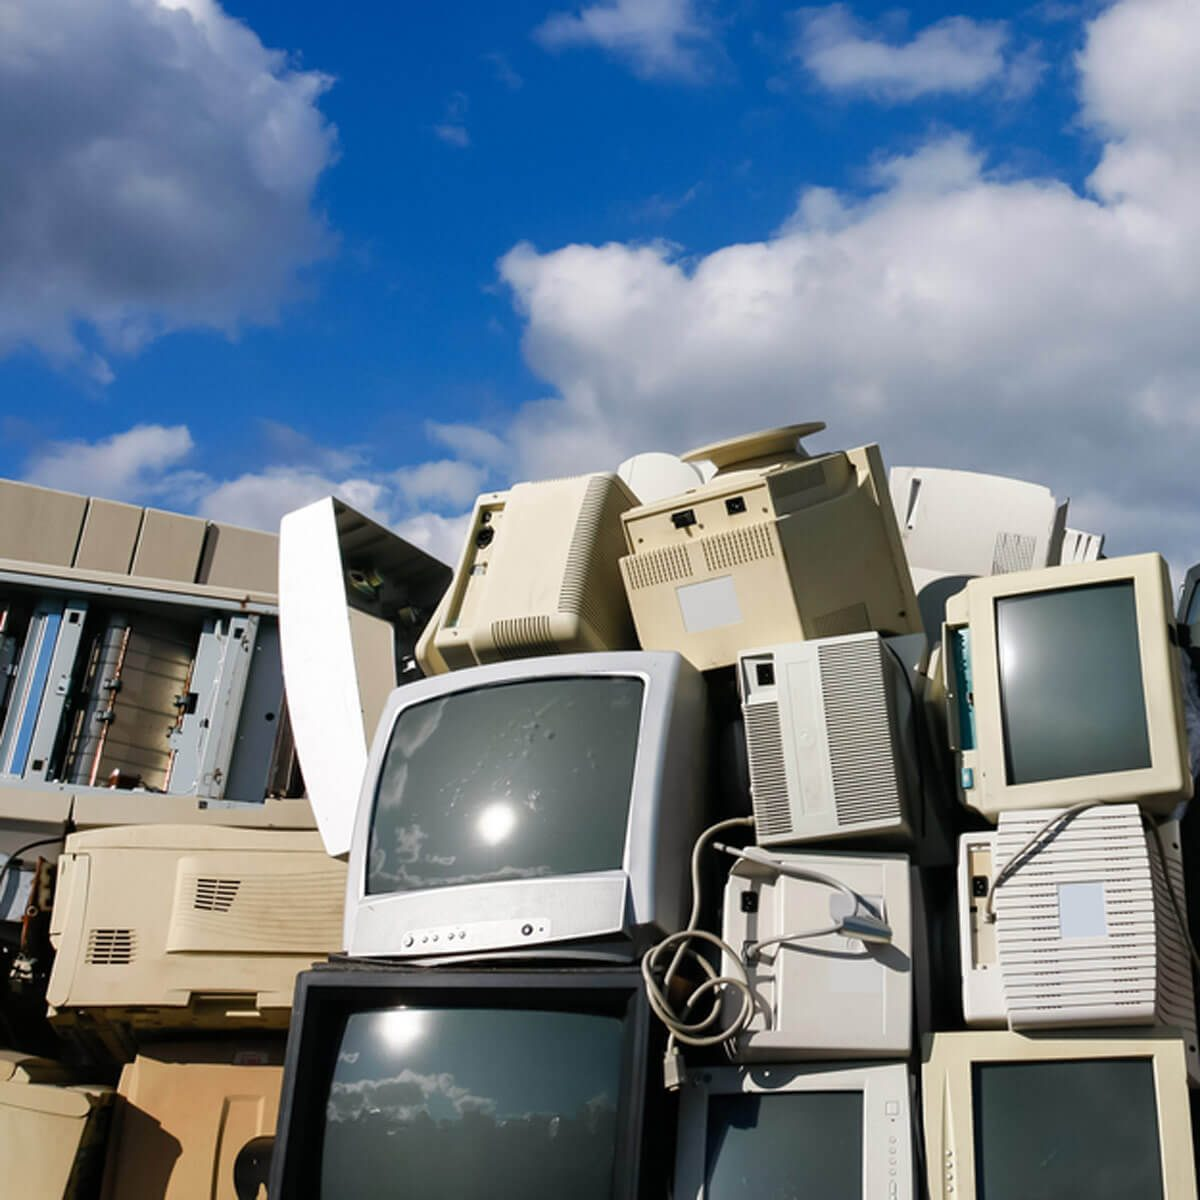 electronic waste for recycling or safe disposal